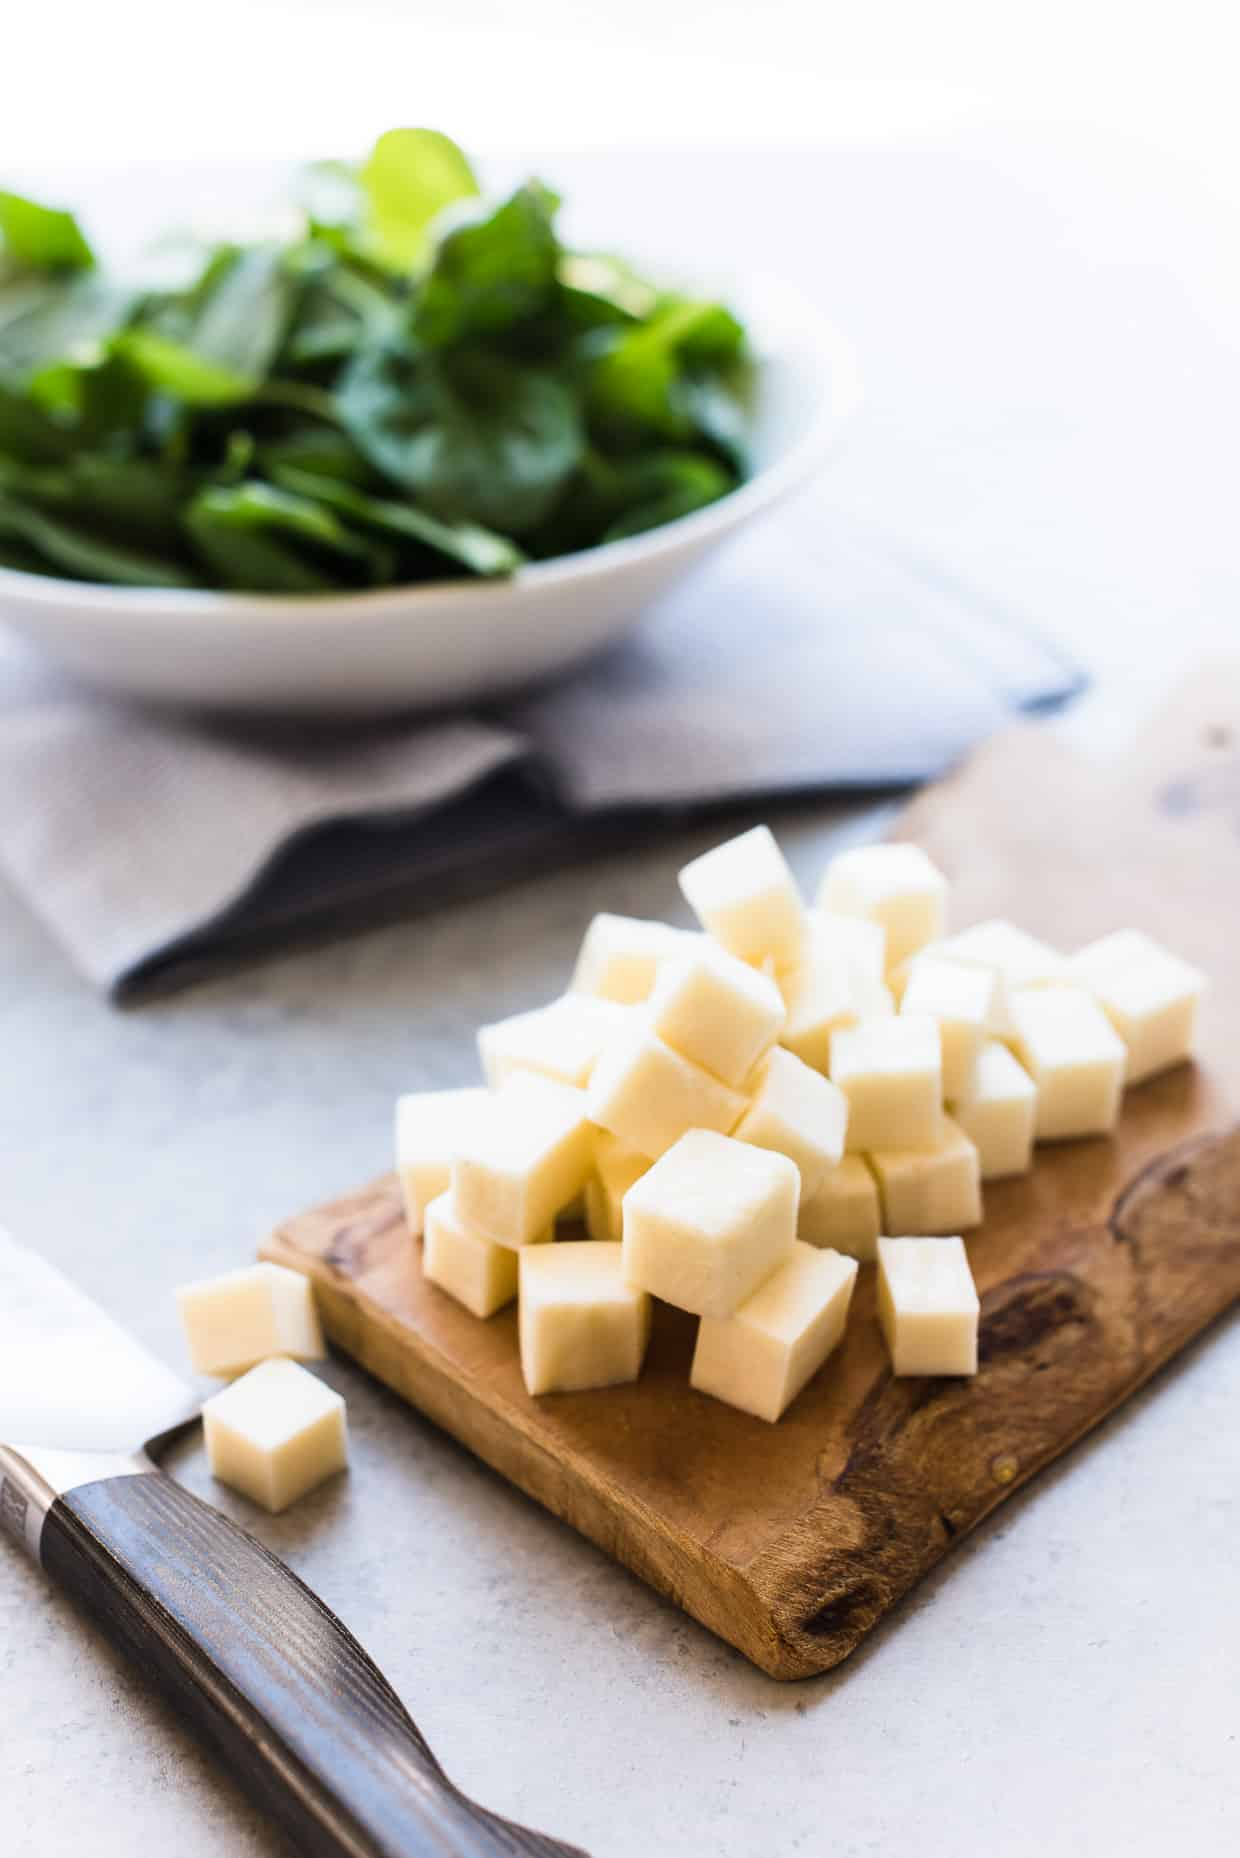 Cubes of paneer cheese on a cutting board.